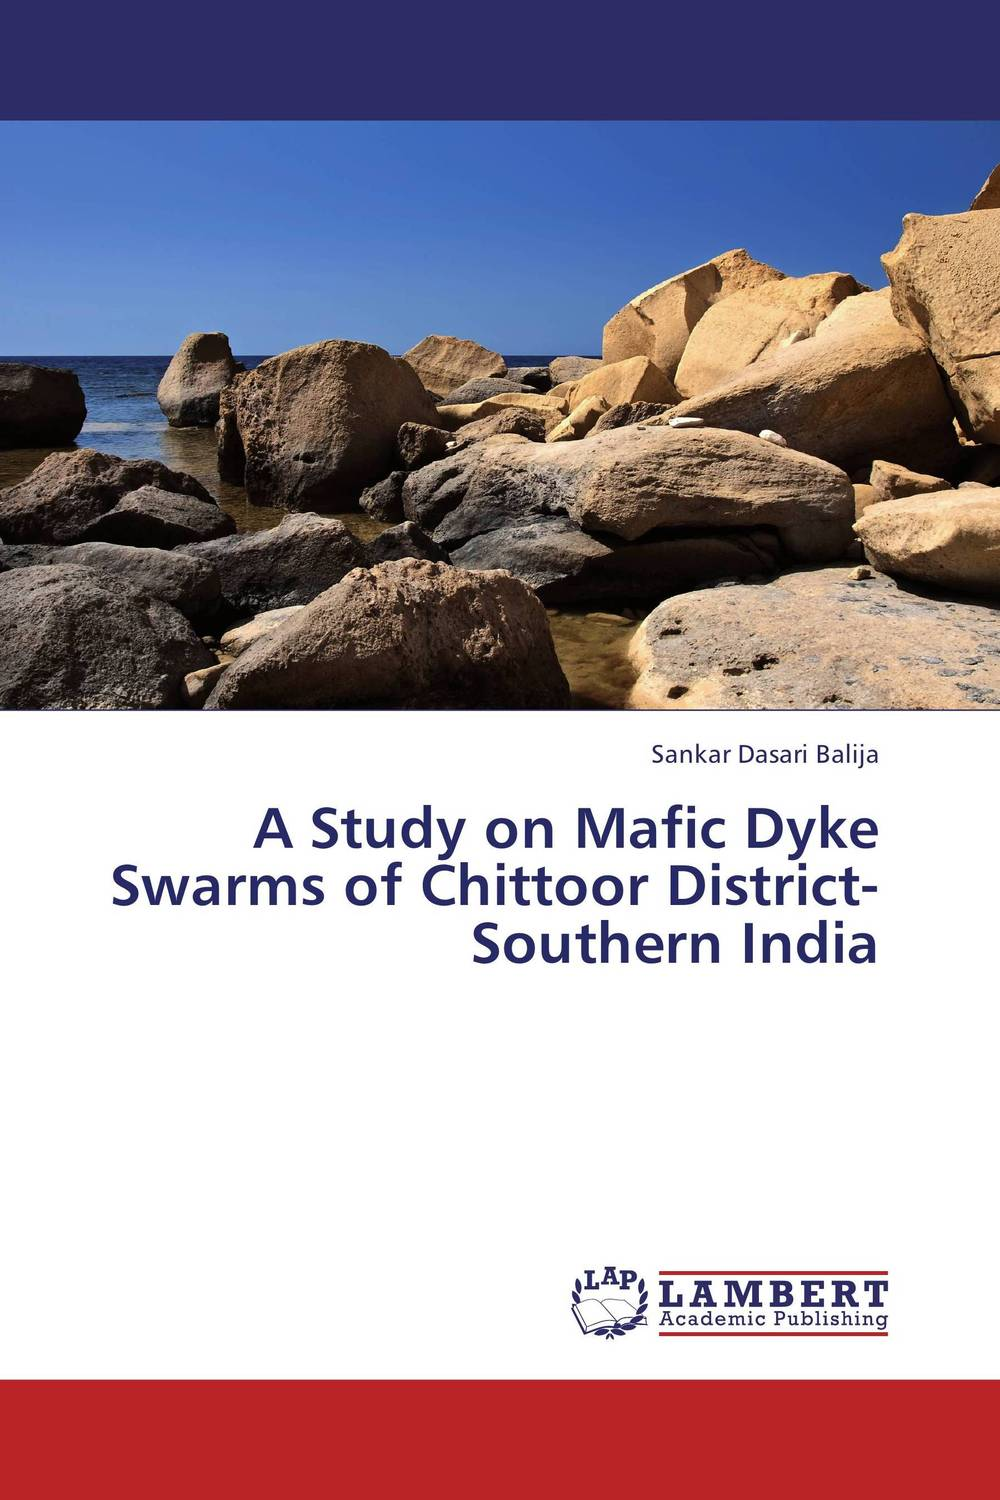 A Study on Mafic Dyke Swarms of Chittoor District- Southern India arte lamp подвесная люстра arte lamp bellator a8959sp 5br